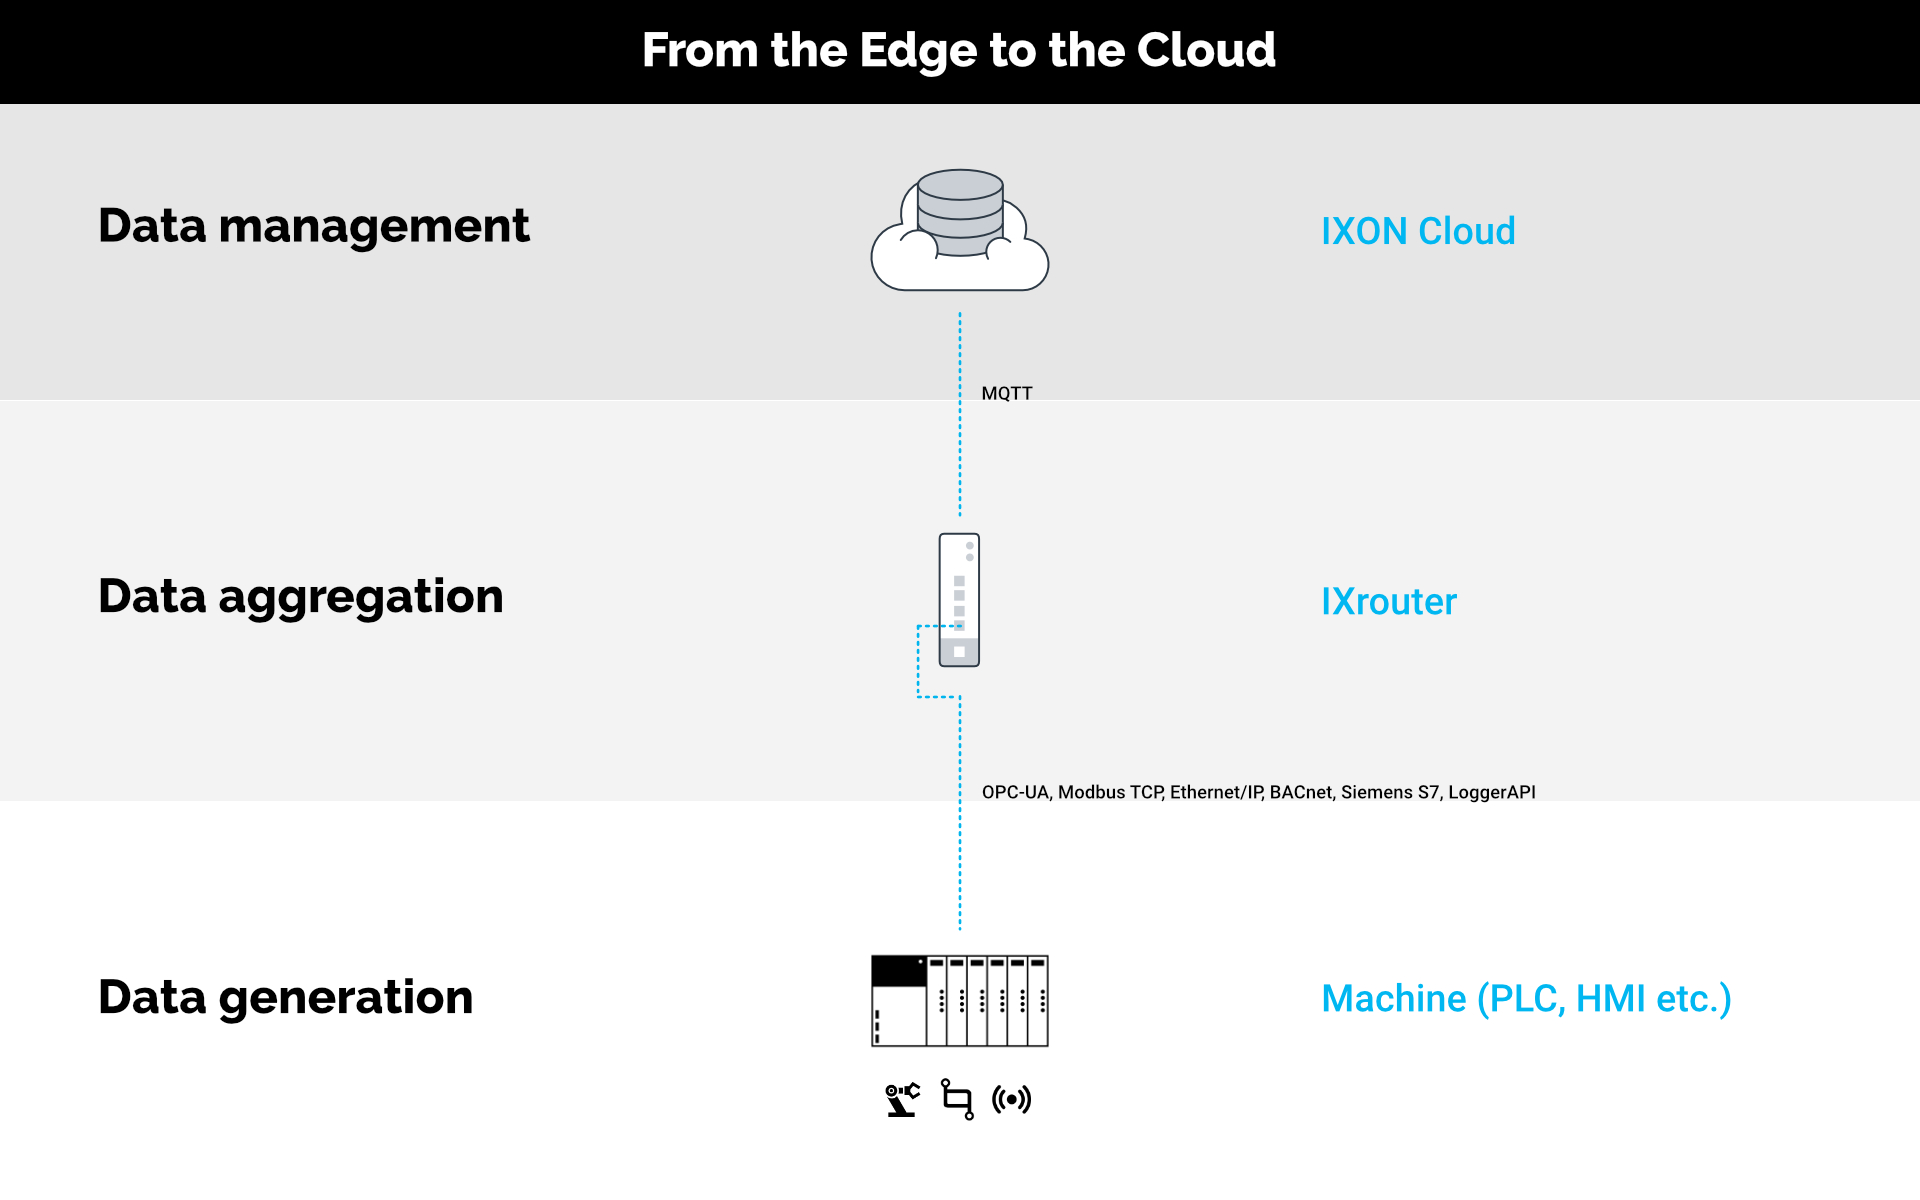 Machine data from the edge to the cloud. Data generation, aggregation, management - IXON Cloud